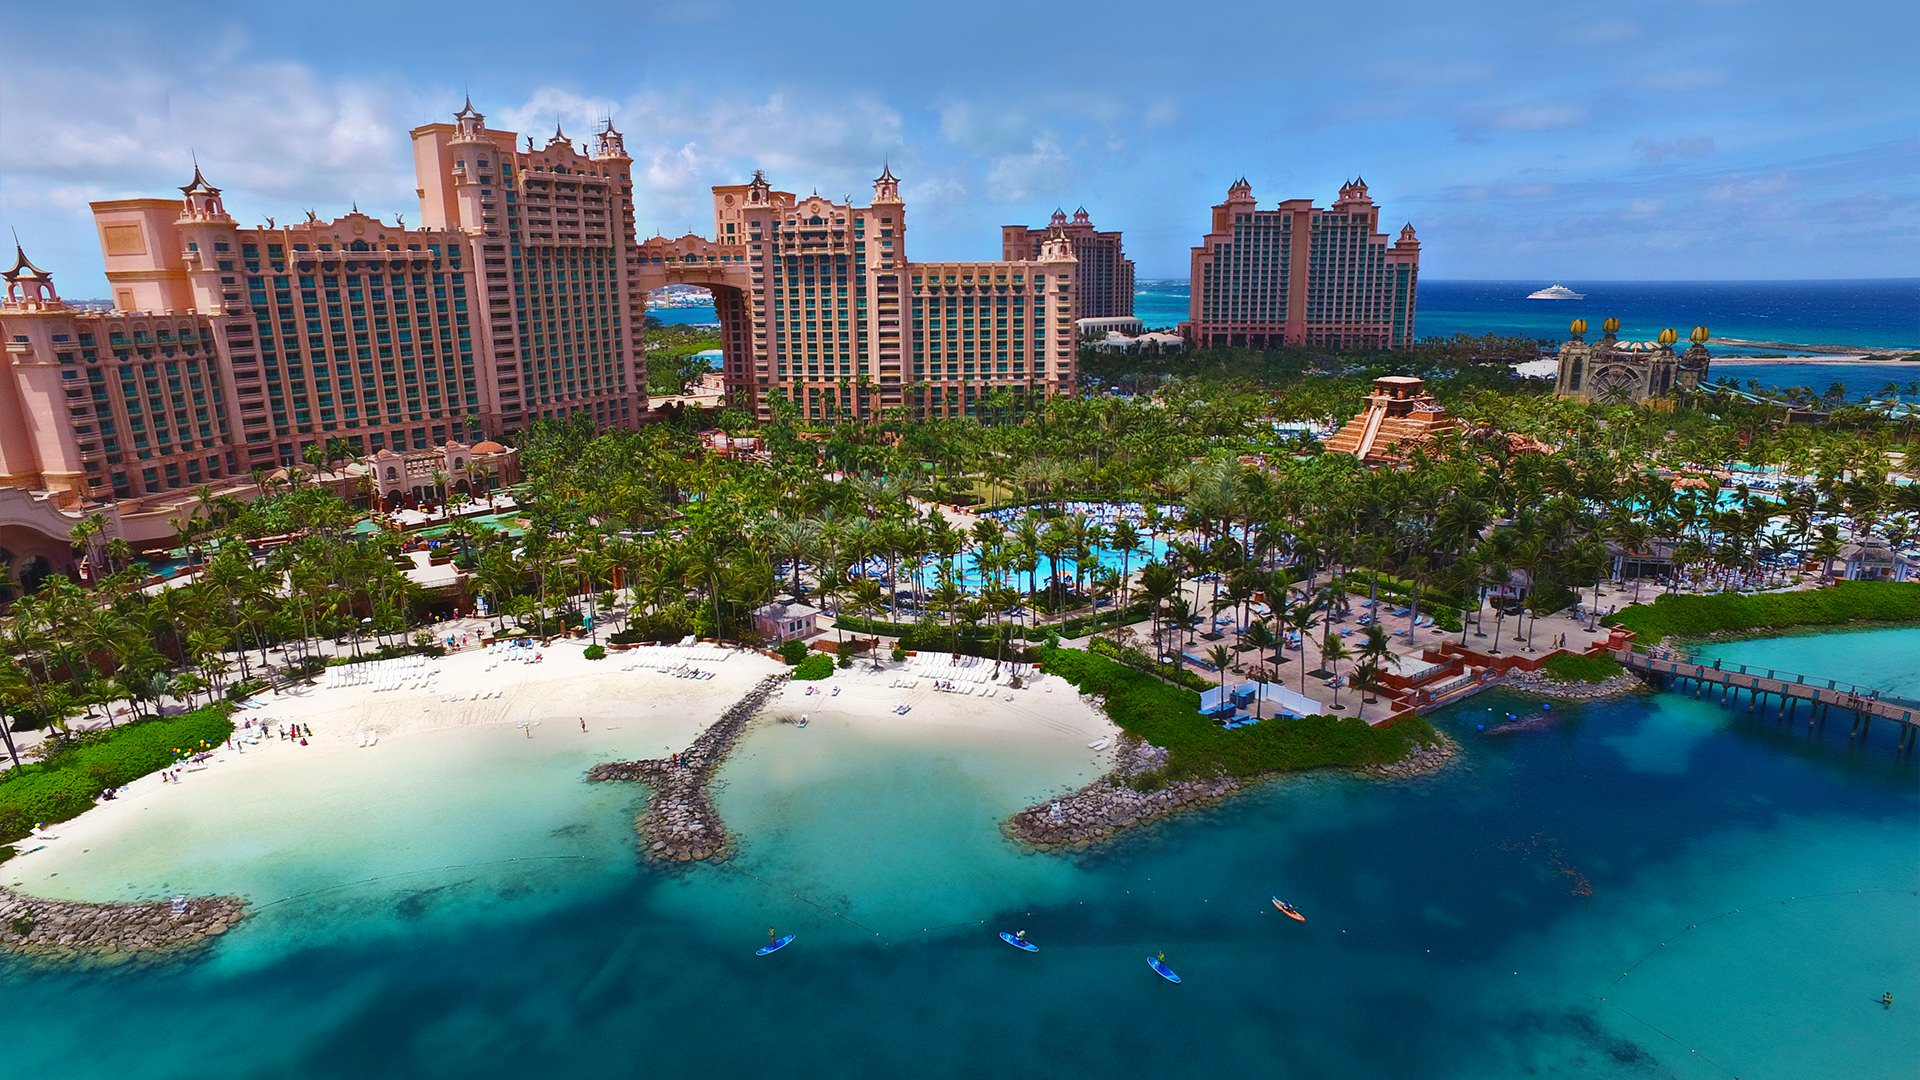 Atlantis casino and resort